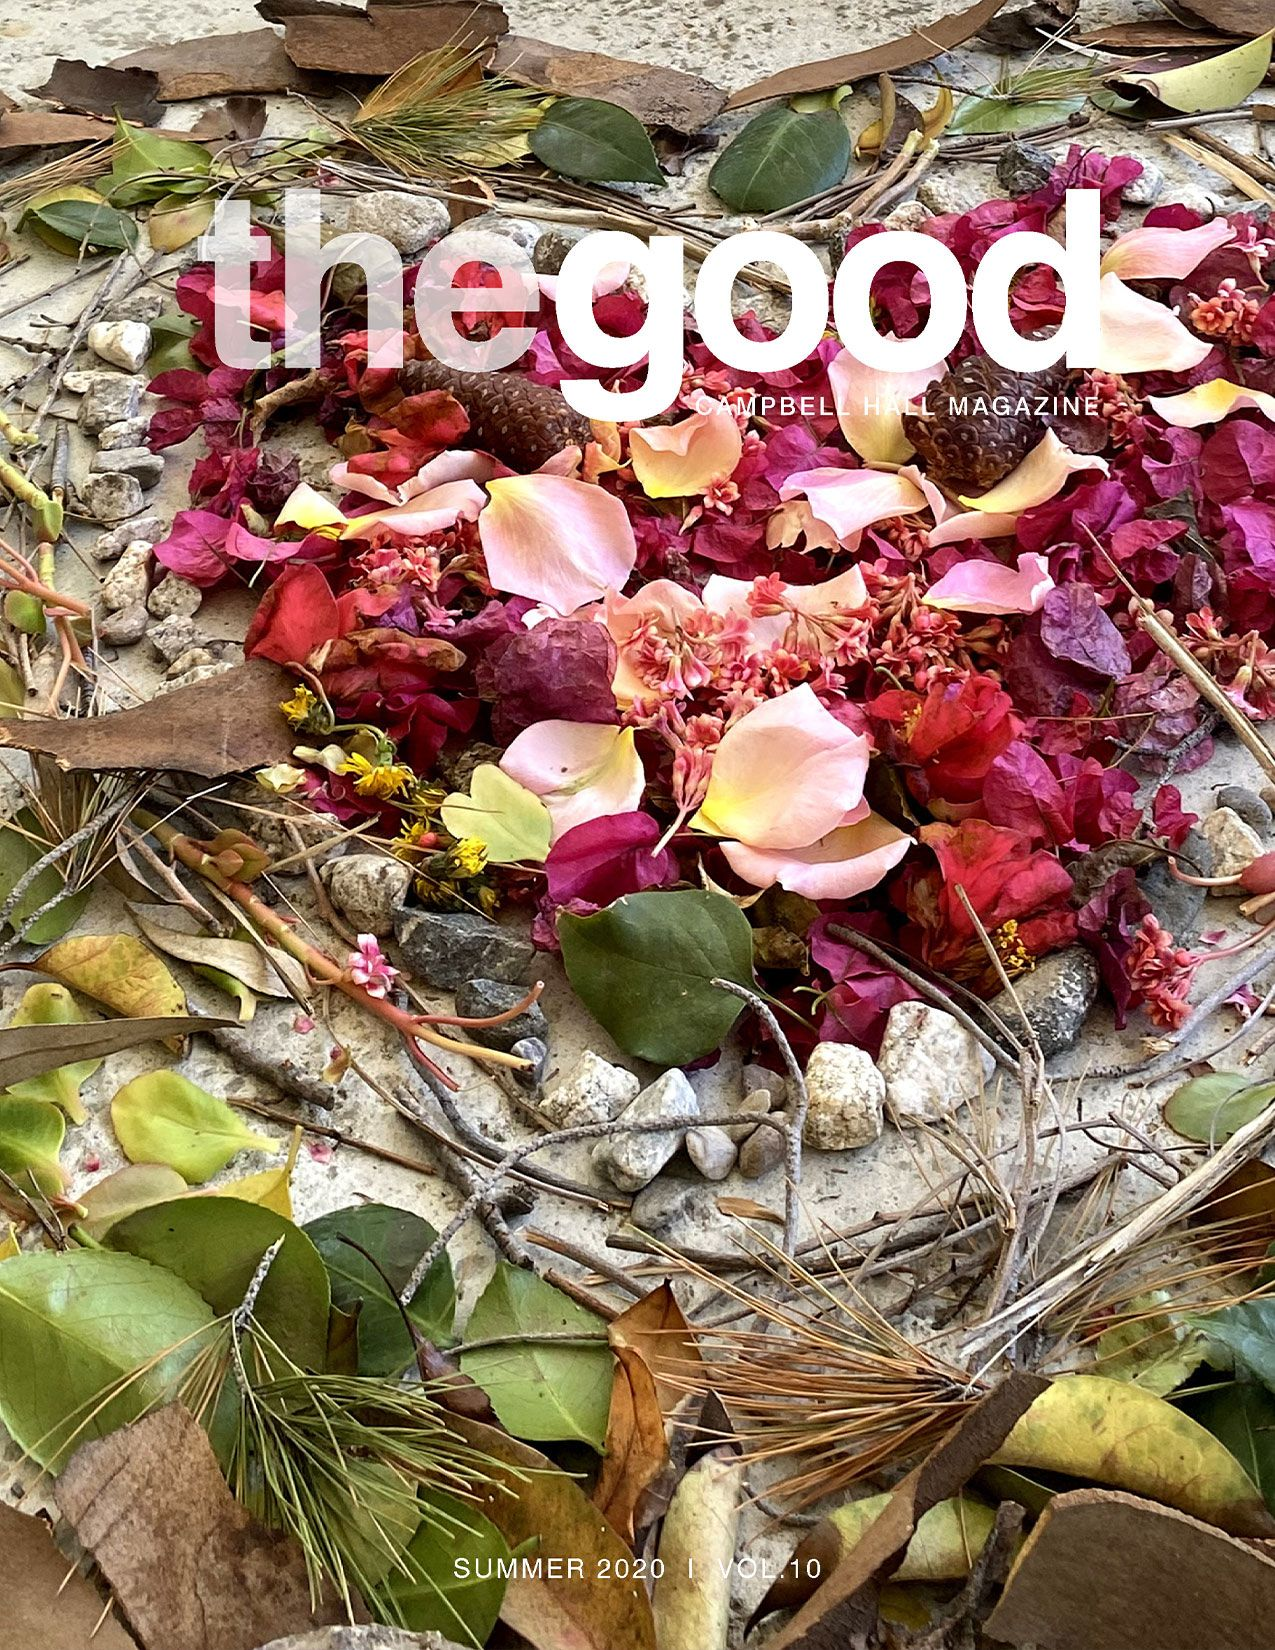 The Good Magazine